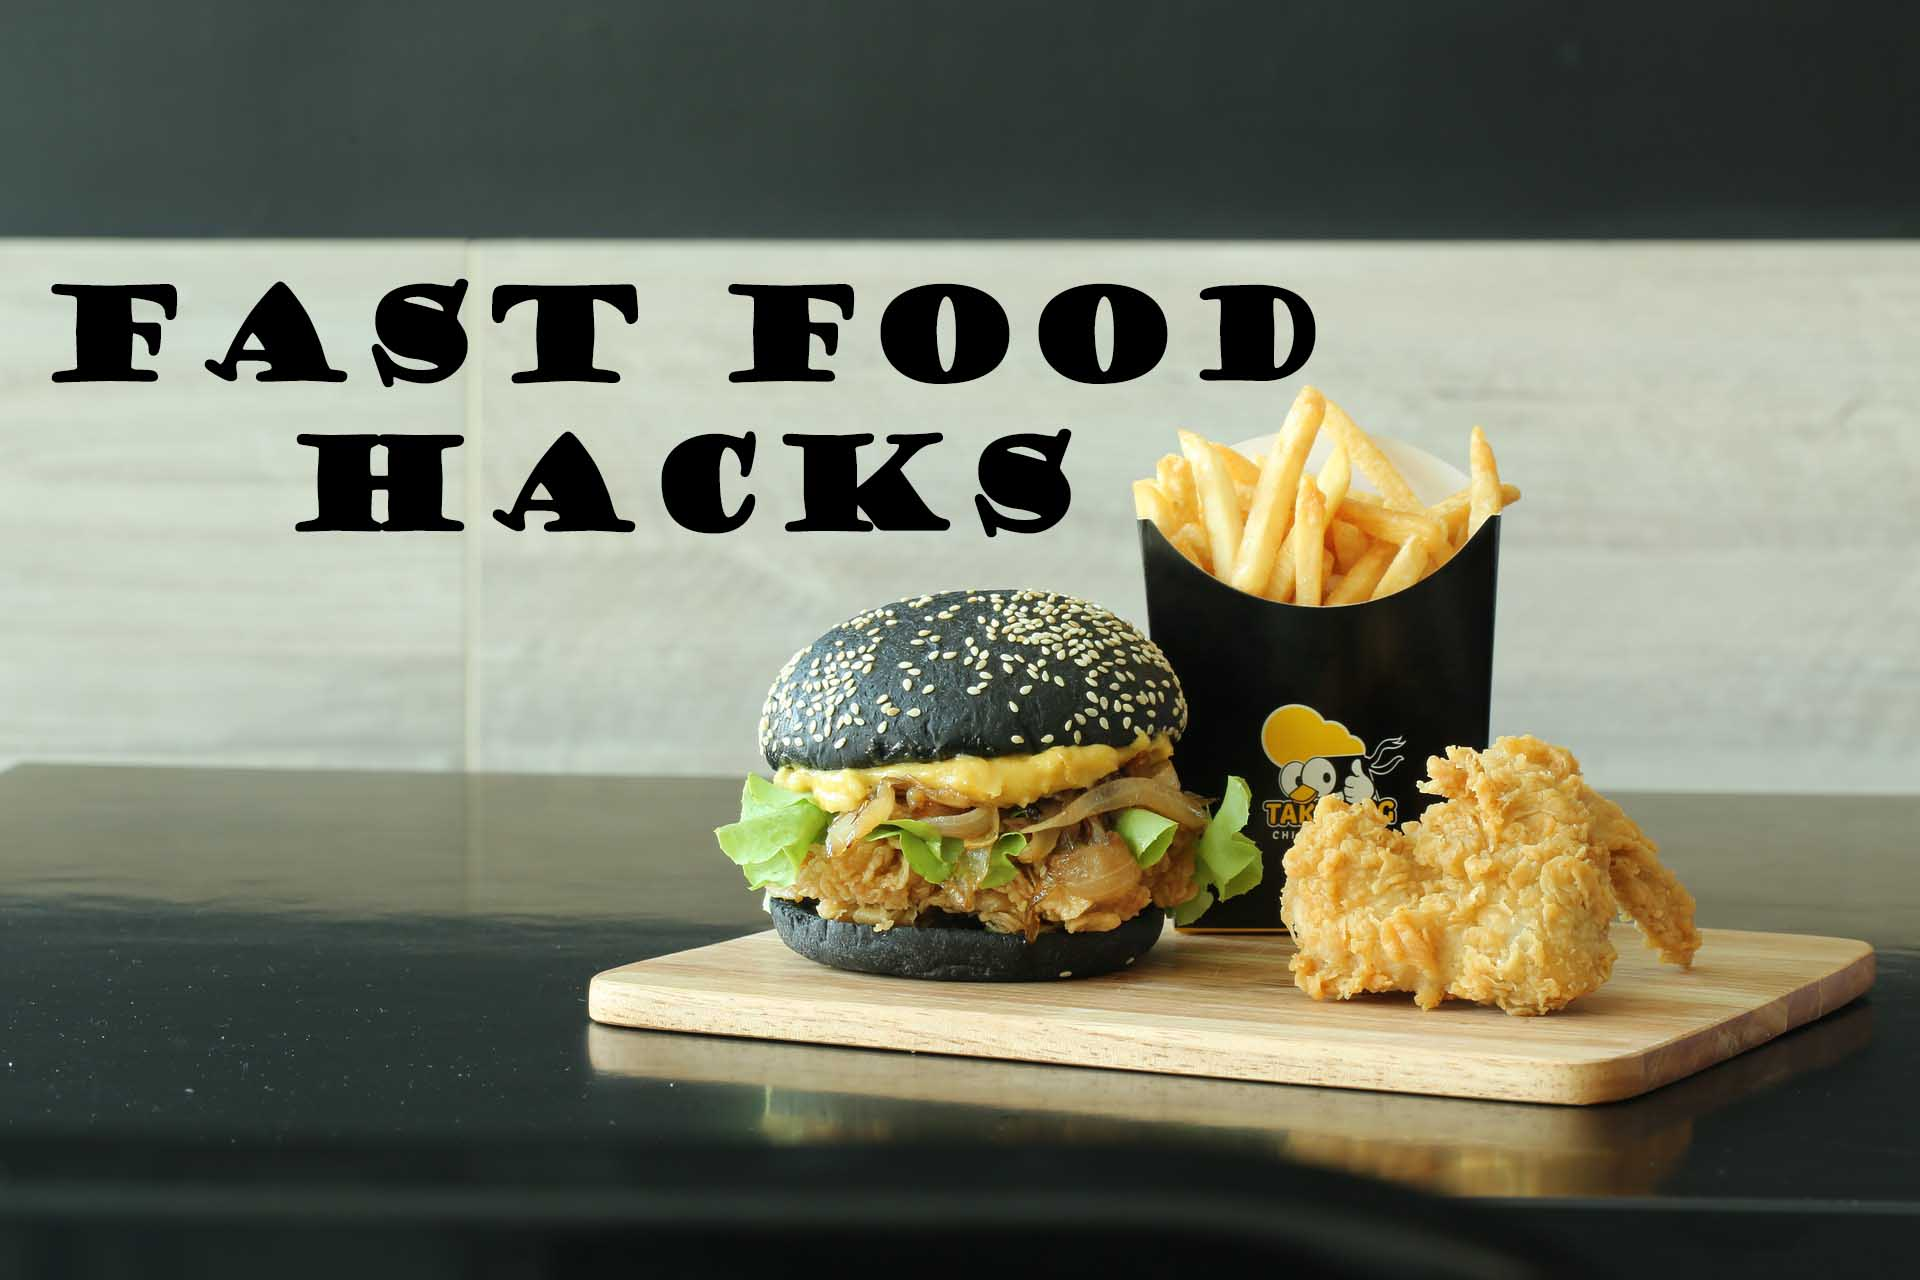 Sonic Menu And Prices >> Fast Food Hacks to Make Your Meal Even Better - Fast Food Menu Prices